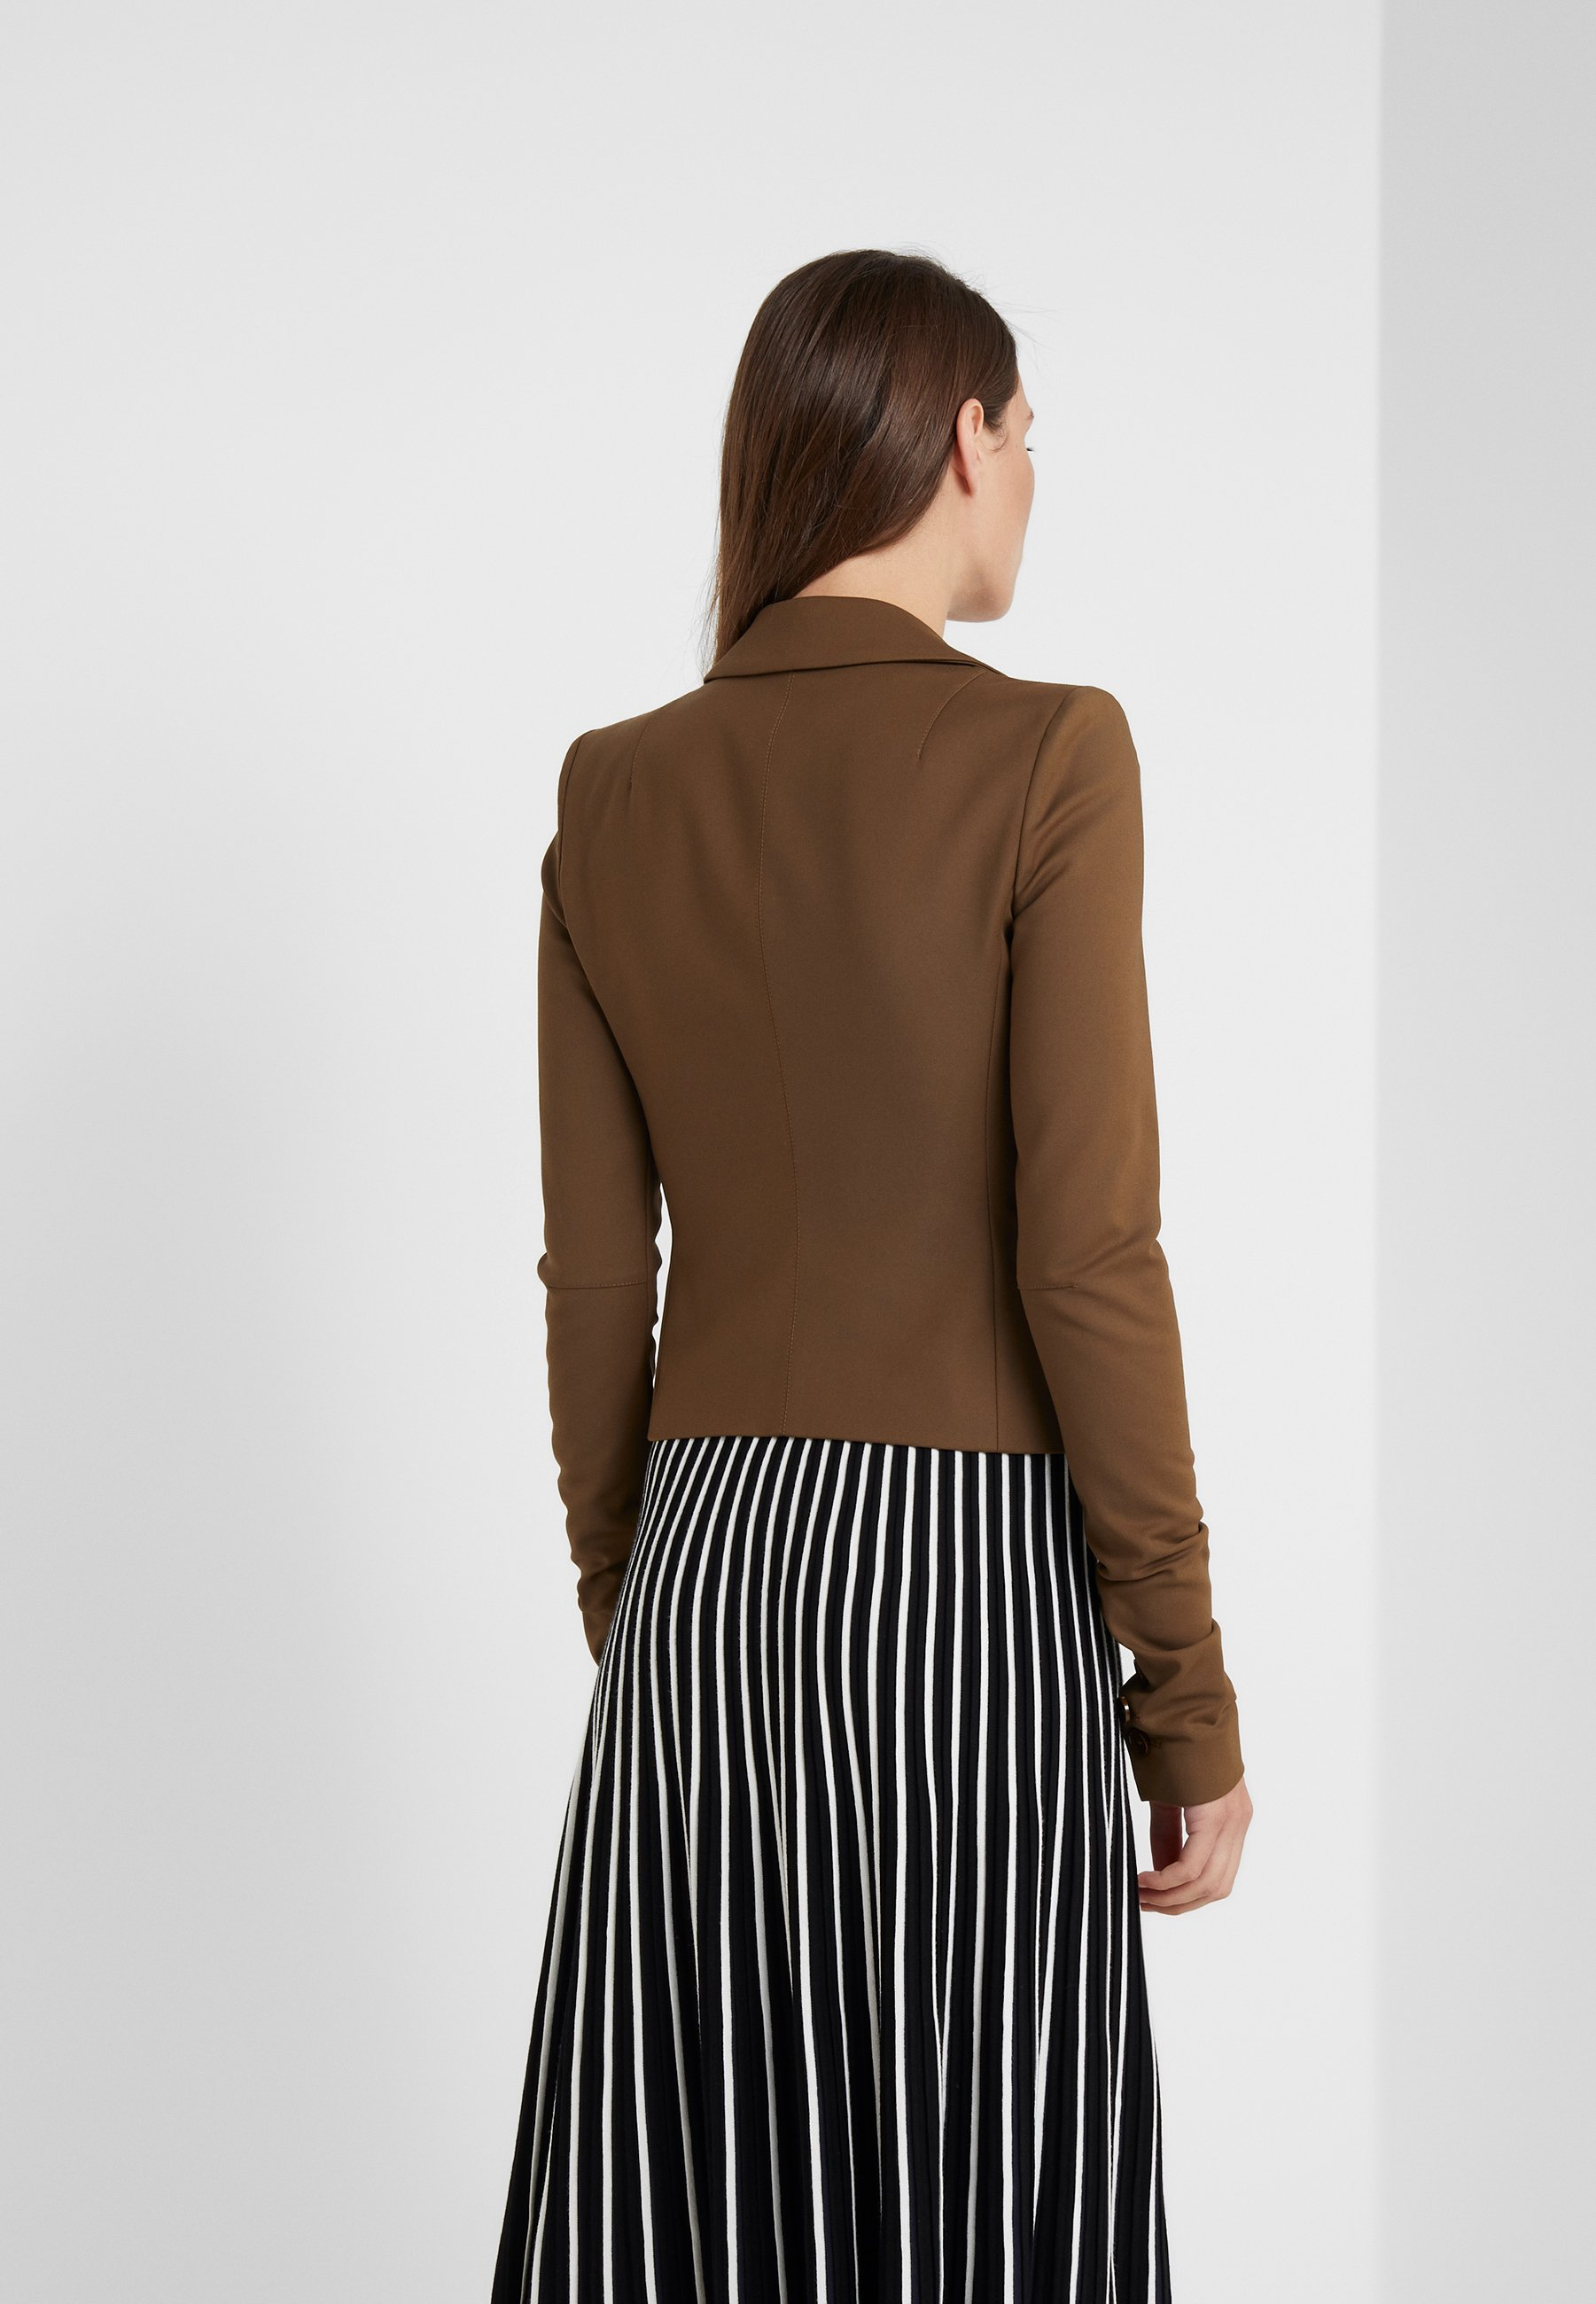 Patrizia Pepe Blazer - Techno Brown